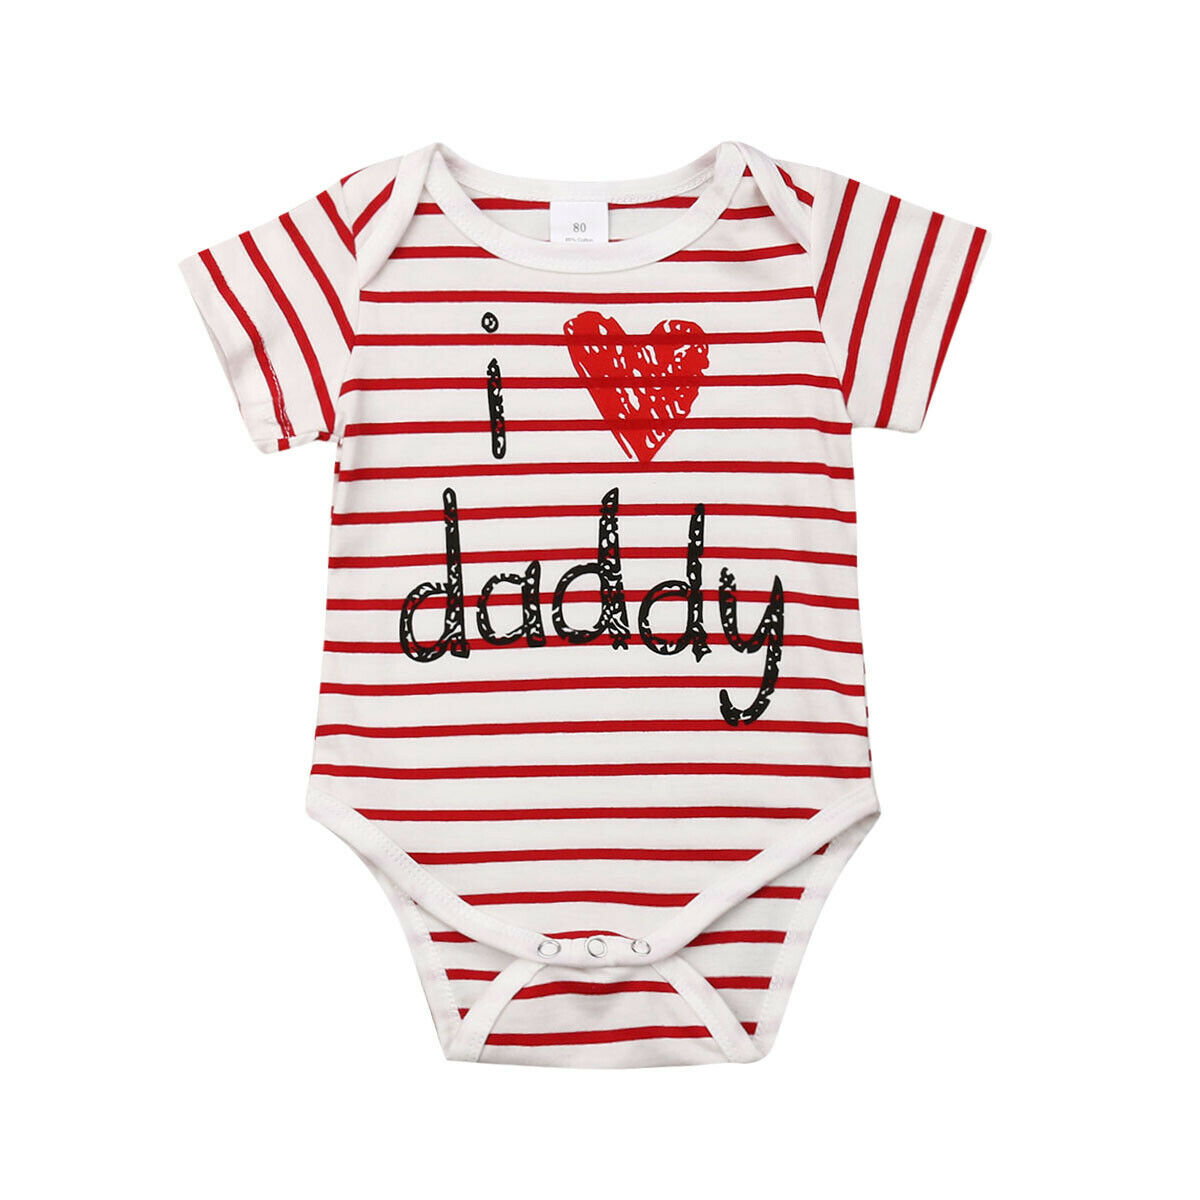 I love daddy Newborn Baby Boy Girl Short Sleeve Striped Cotton   Romper   Jumpsuit One Pieces Outfits Baby Clothes